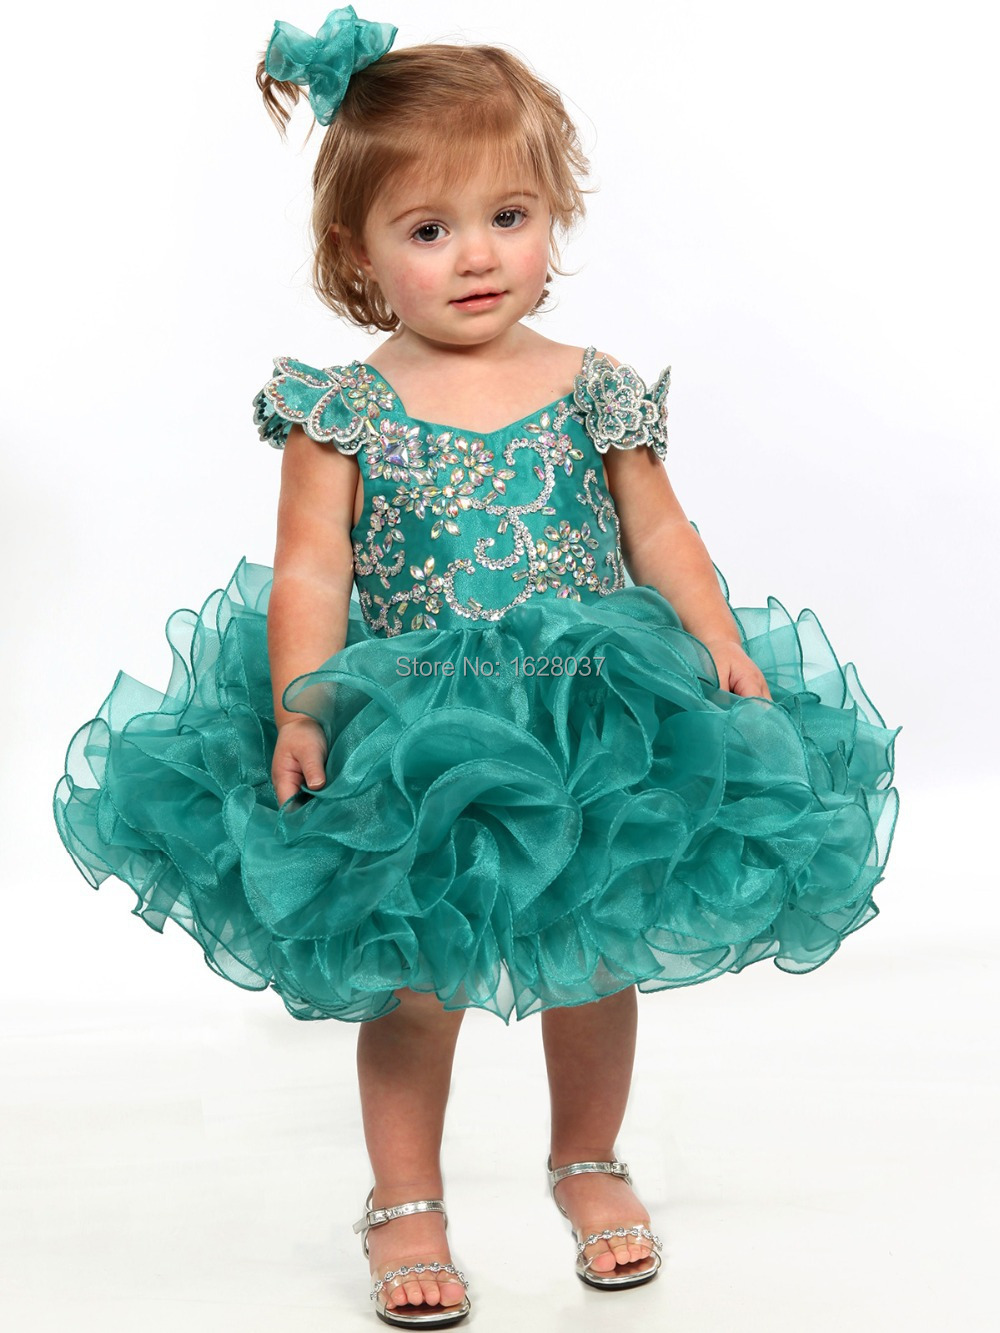 Dorable Infant Suits For Wedding Inspiration - Wedding Dress Ideas ...